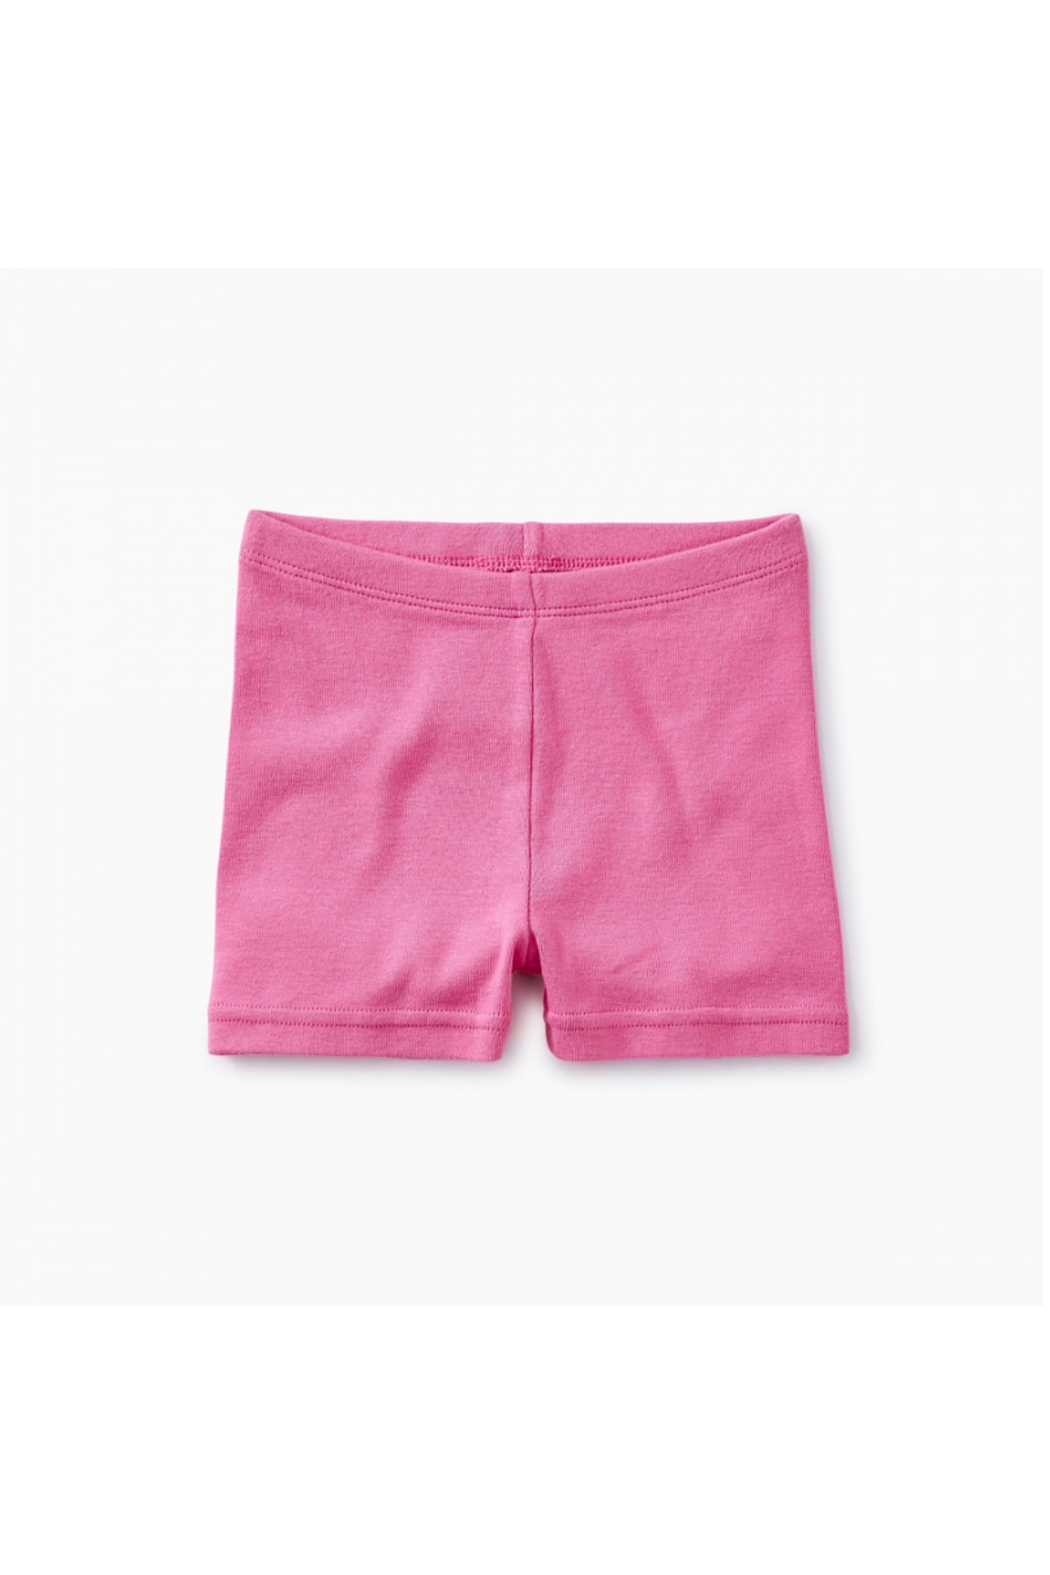 Tea Collection Solids Somersault Shorts - Main Image